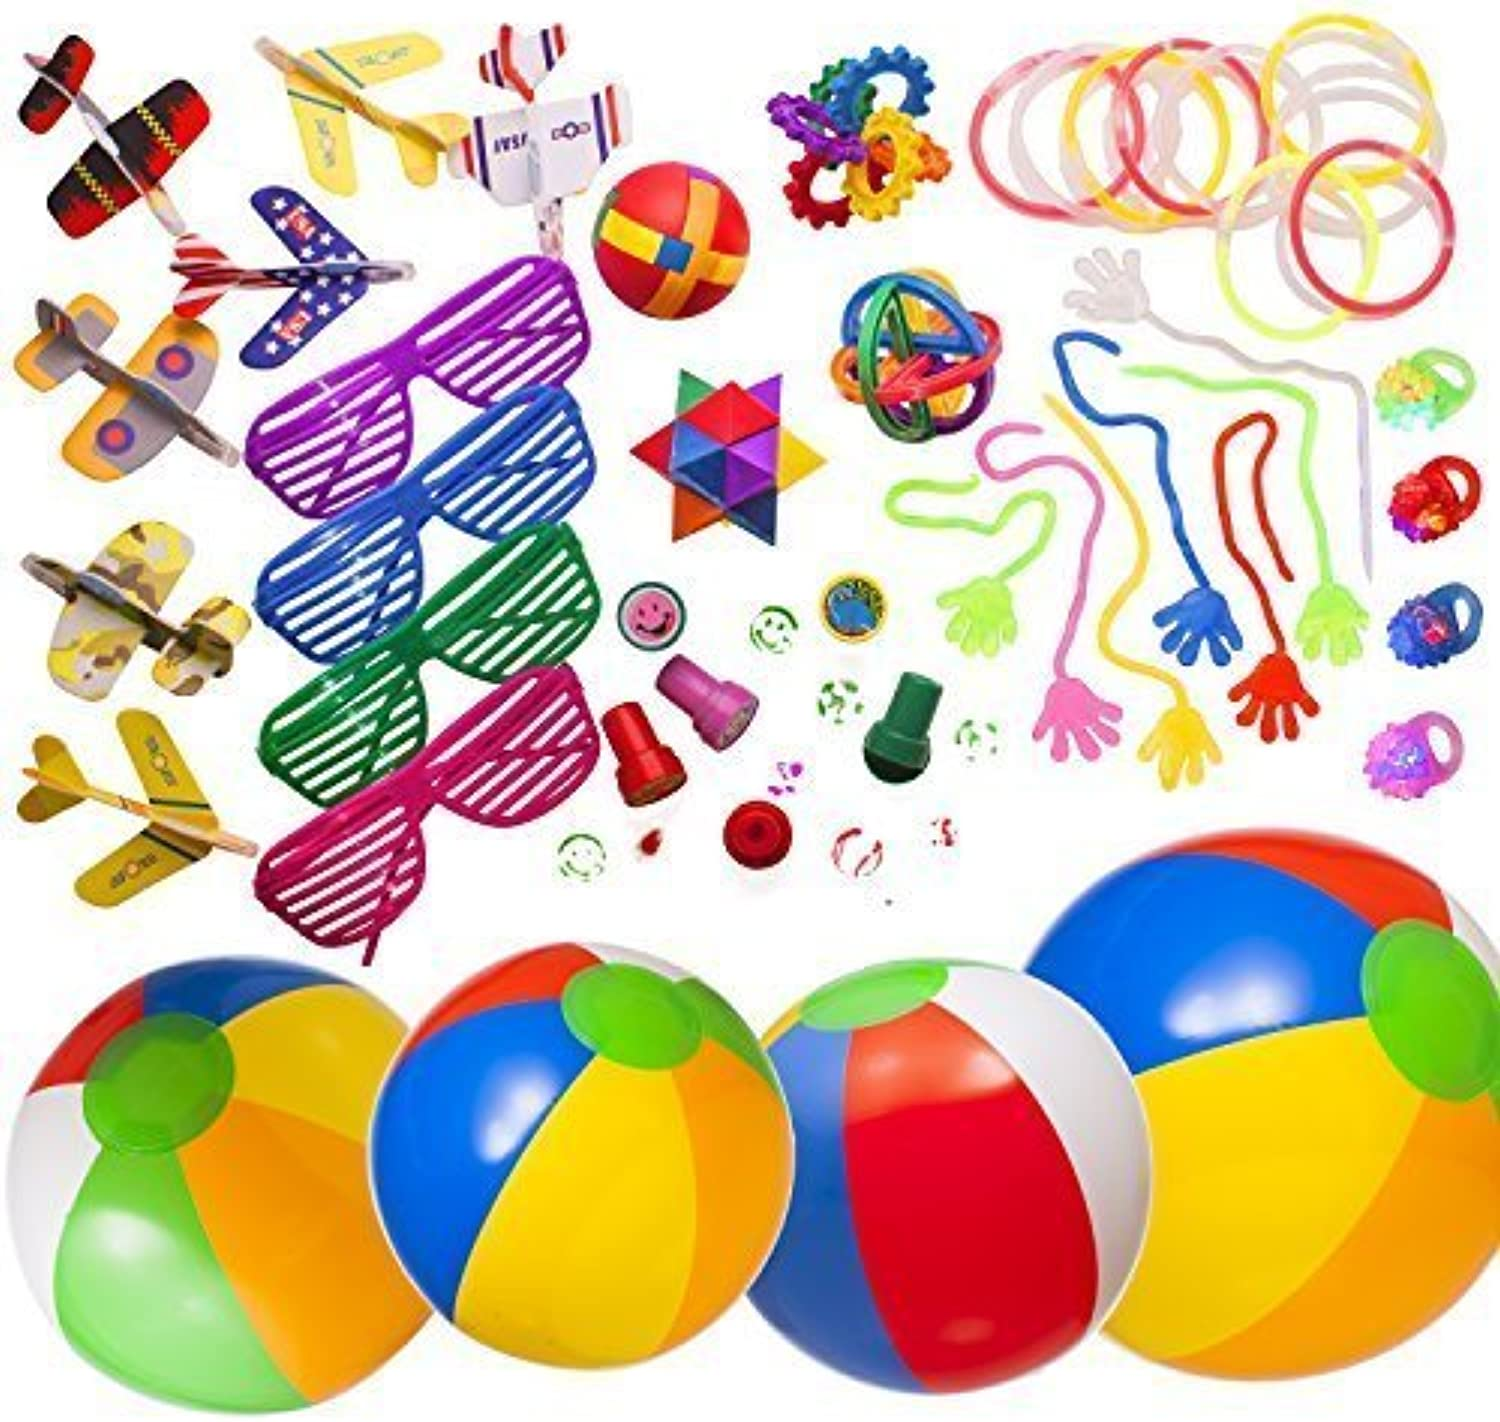 Great Summer and Party Assortment 50 pieces as illustrated sold by  Smart Novelty by Smart Novelty